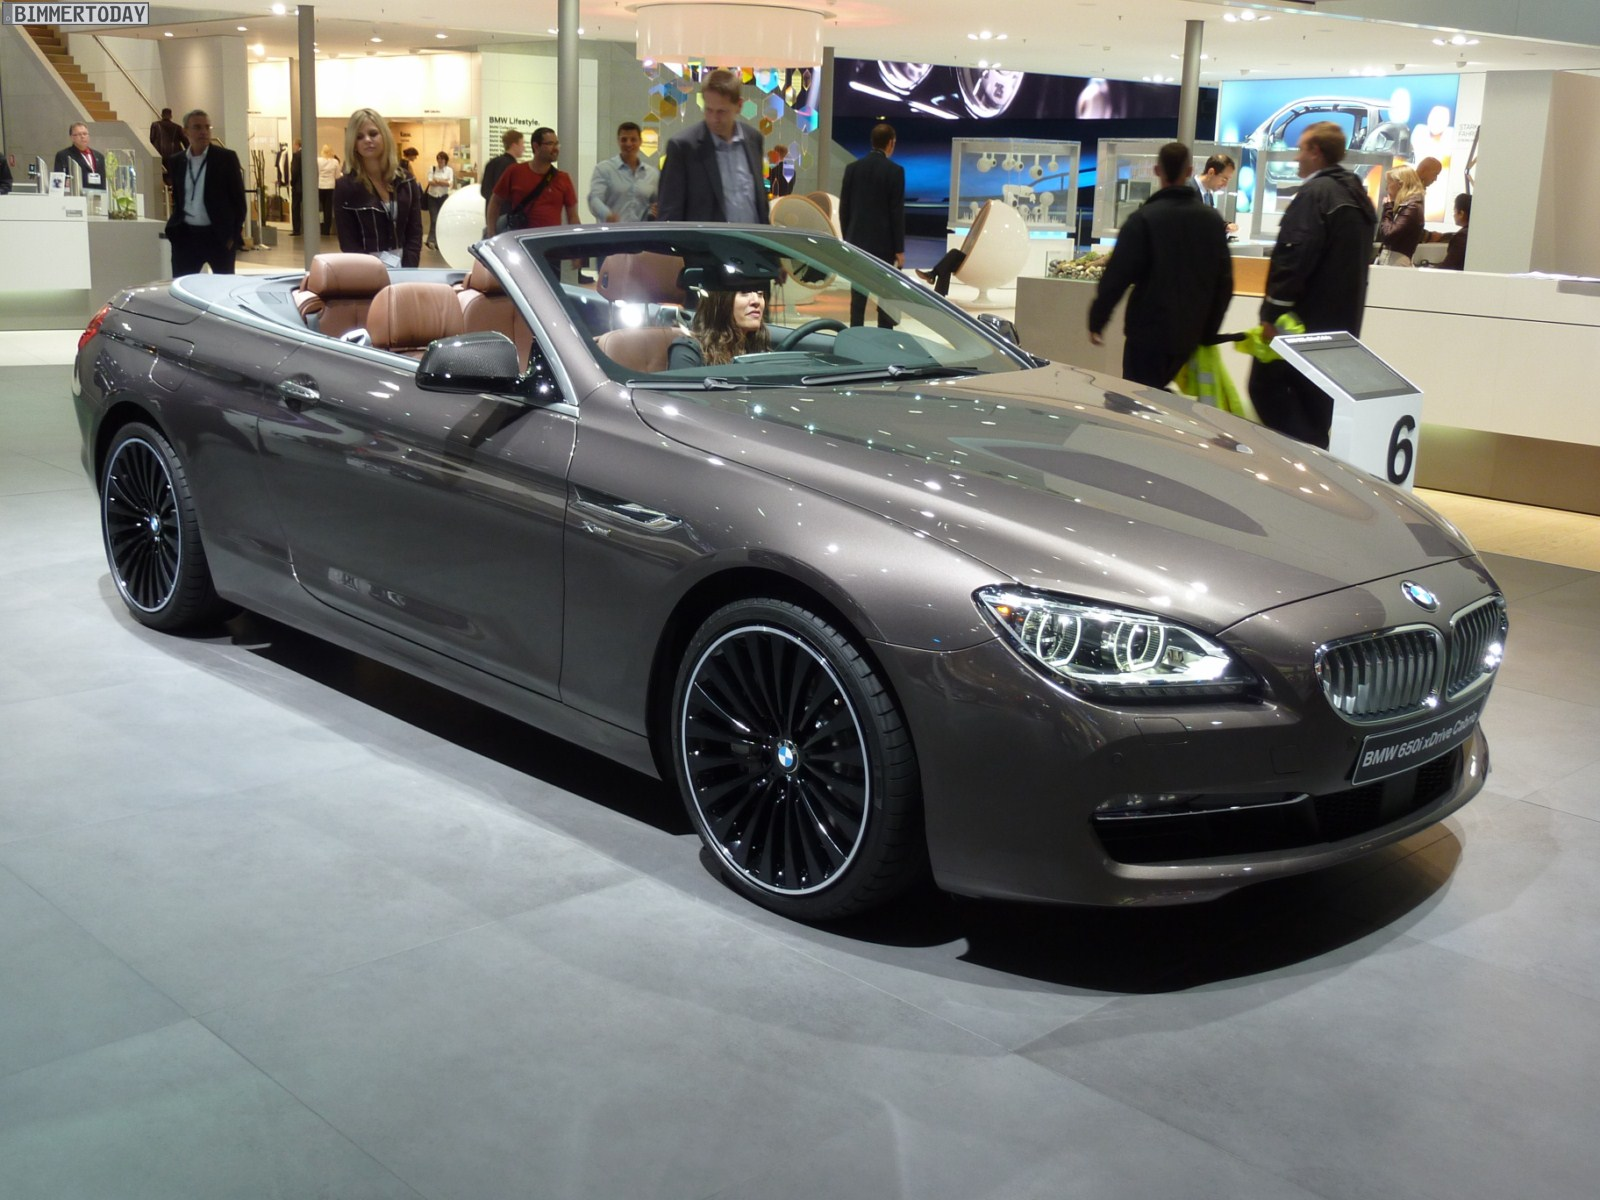 Iaa 2011 Bmw 650i Xdrive Cabrio F12 In Havanna Mit